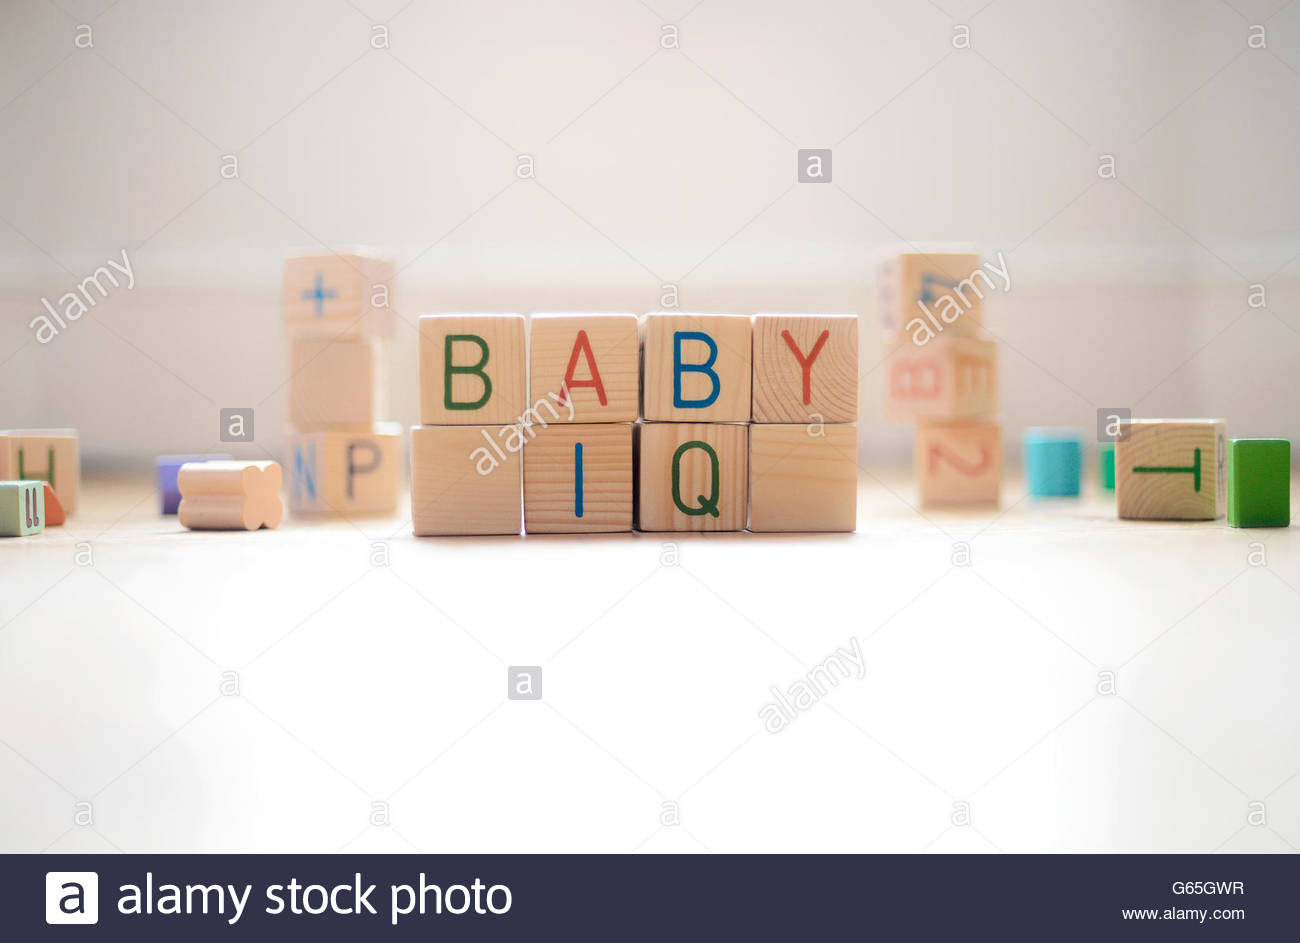 Play Blocks spelling out Baby IQ - Stock Image